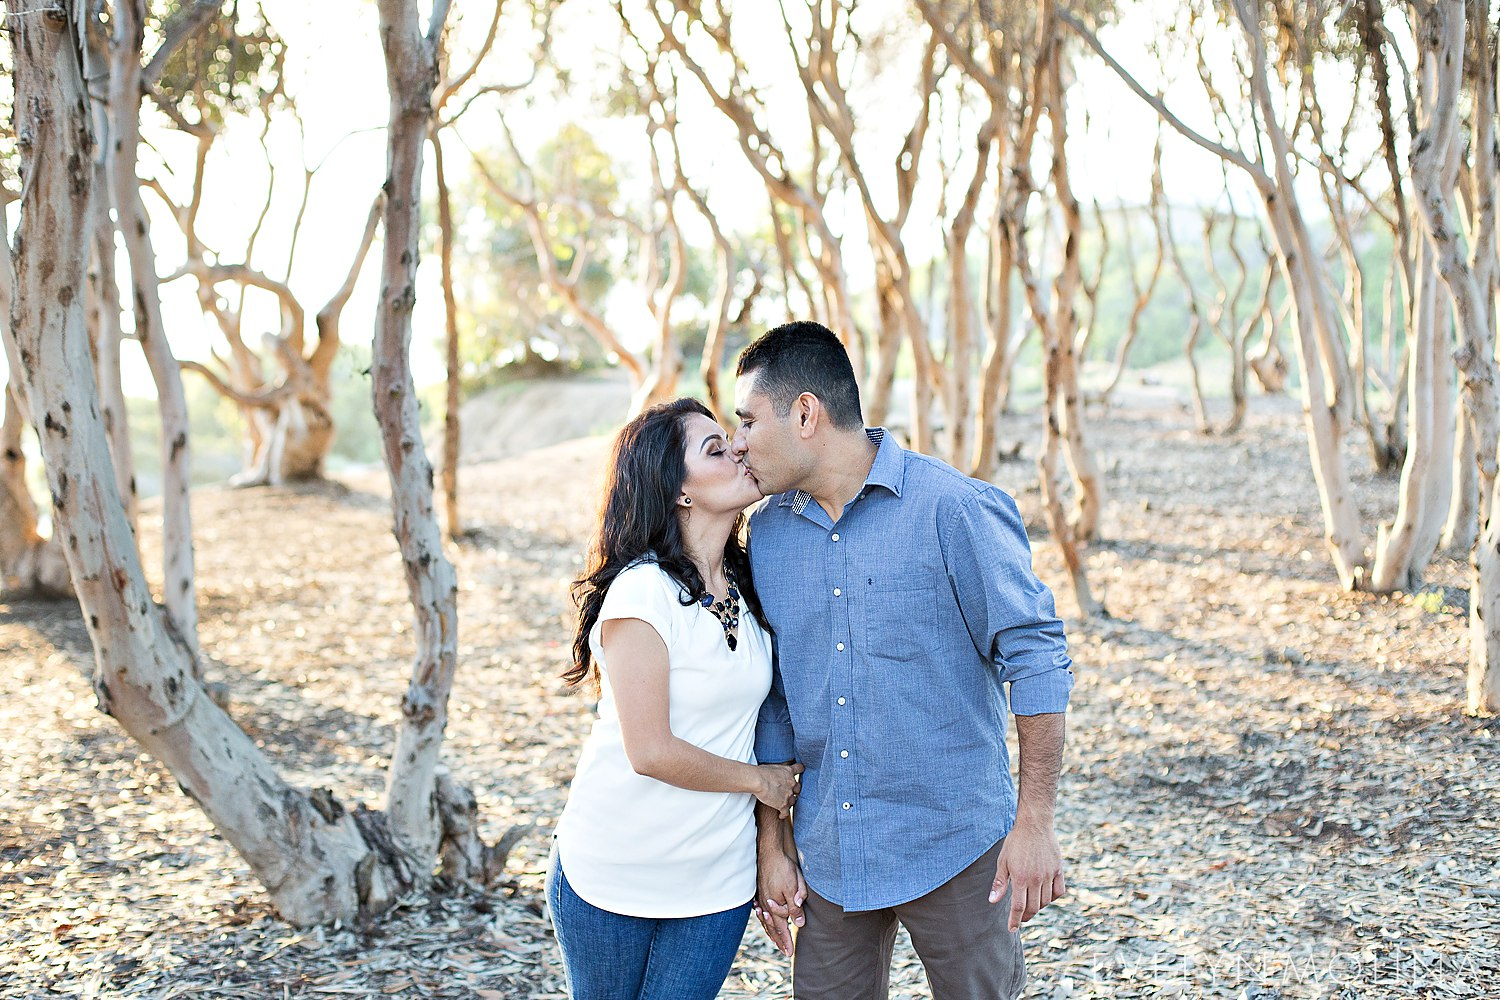 Sunset Cliffs Engagement - Berenice and David_011.jpg